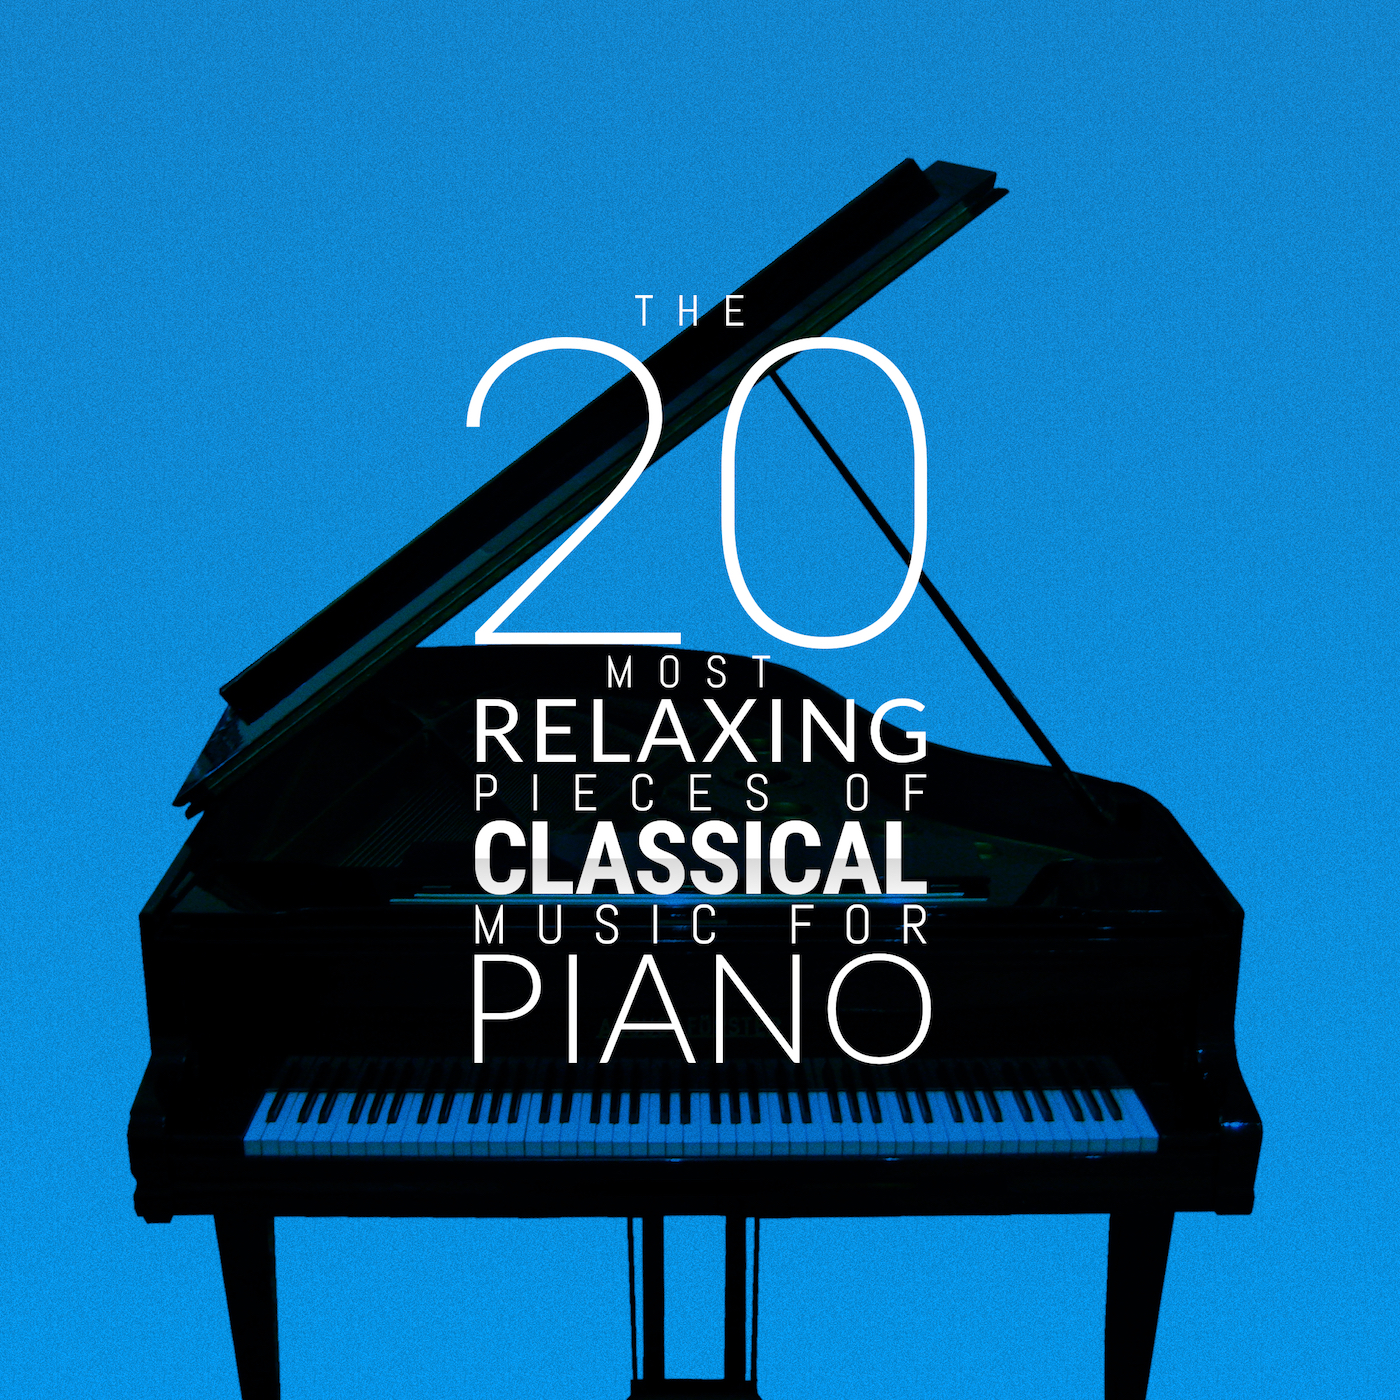 The 20 Most Relaxing Pieces of Classical Music for Piano